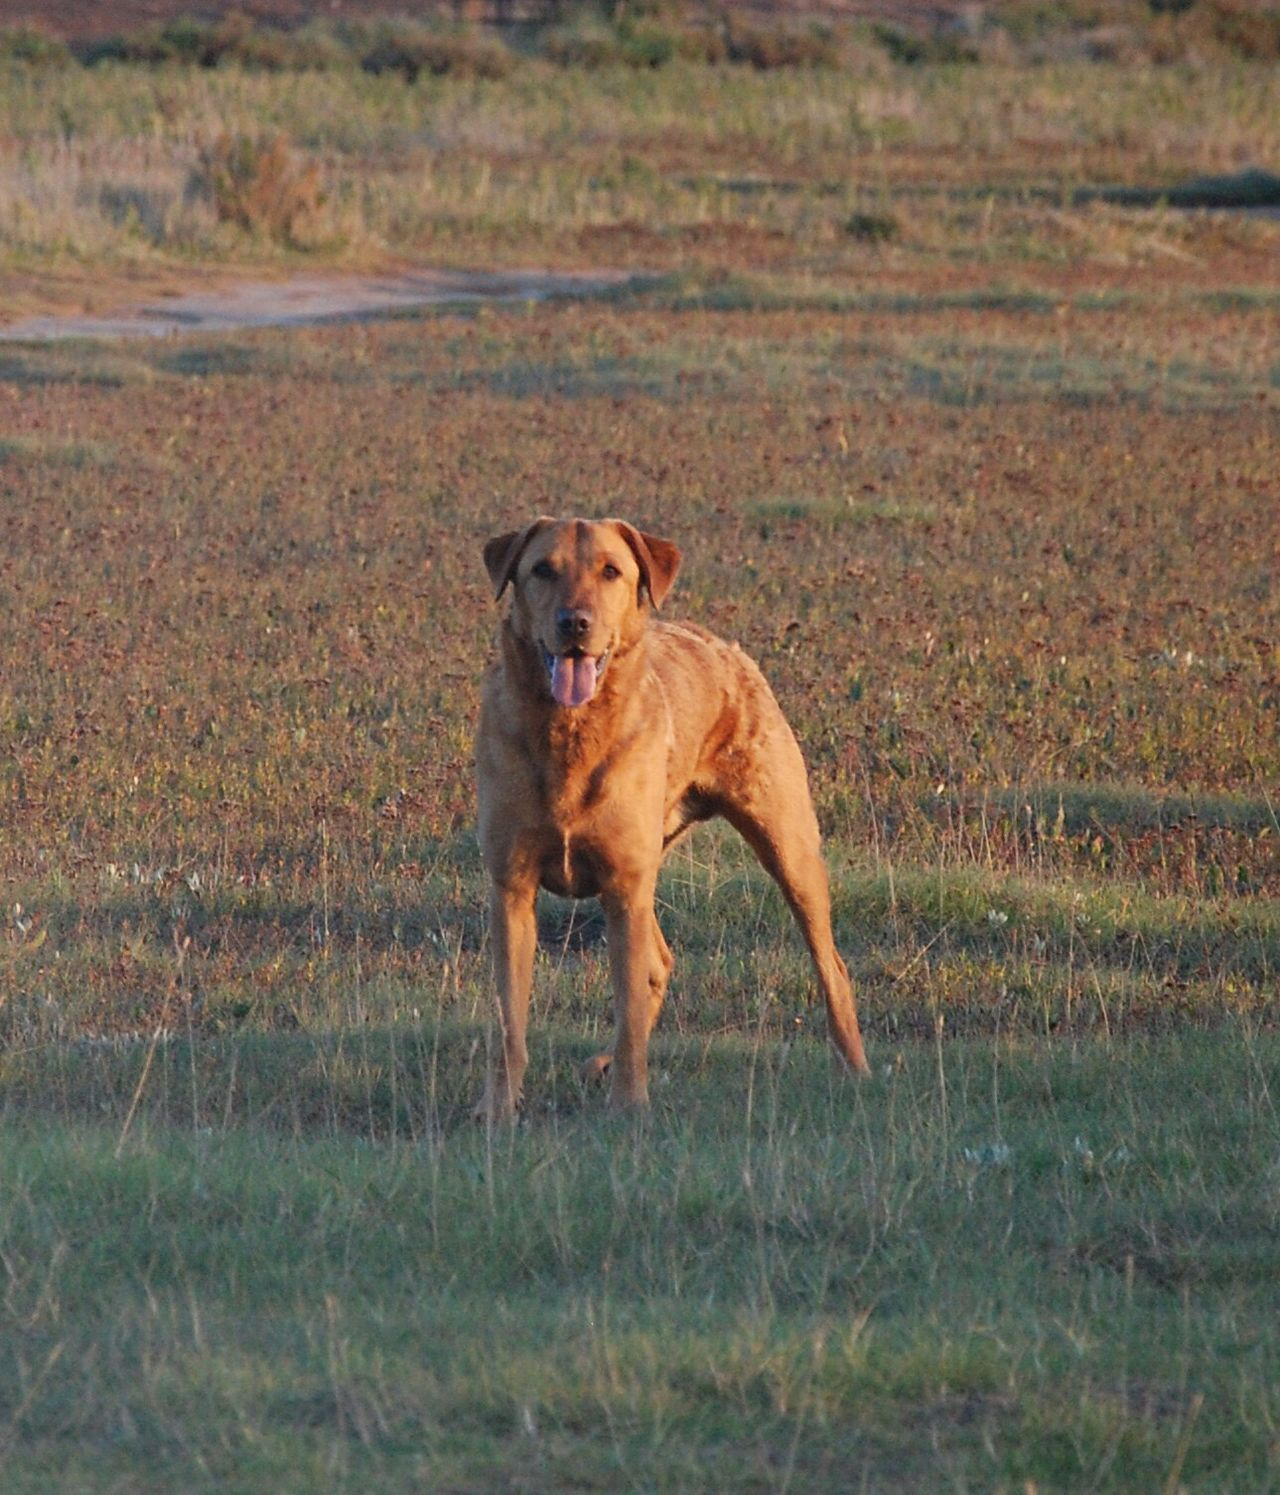 Dog Domestic Animals Pets Animal Themes One Animal Mammal Grass Field No People Growth Nature Portrait Outdoors Day Fetch Red Lab Labrador LabradorRetriever Fox Red Lab Labrador Retriever